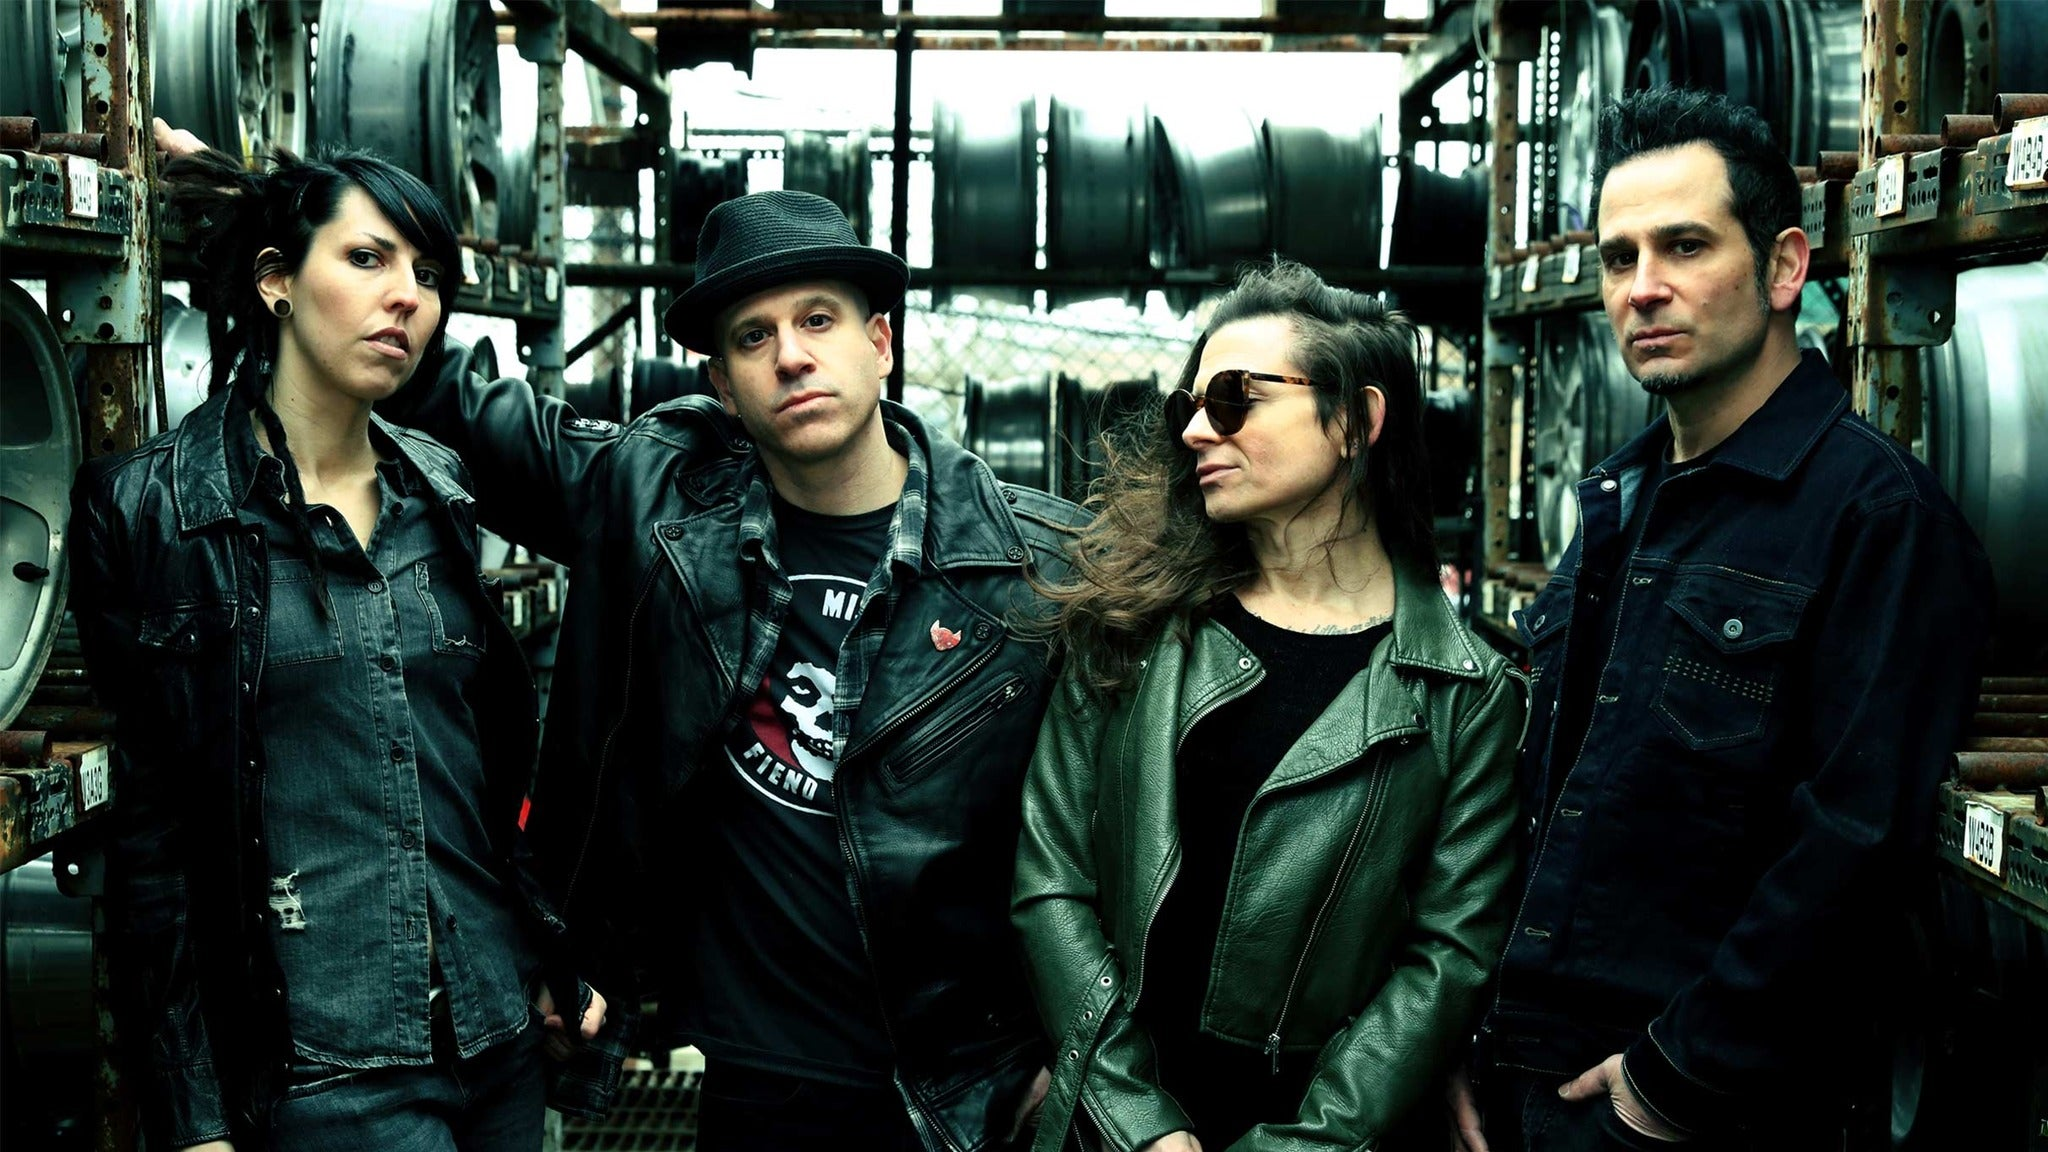 Life of Agony at Toads Place - CT